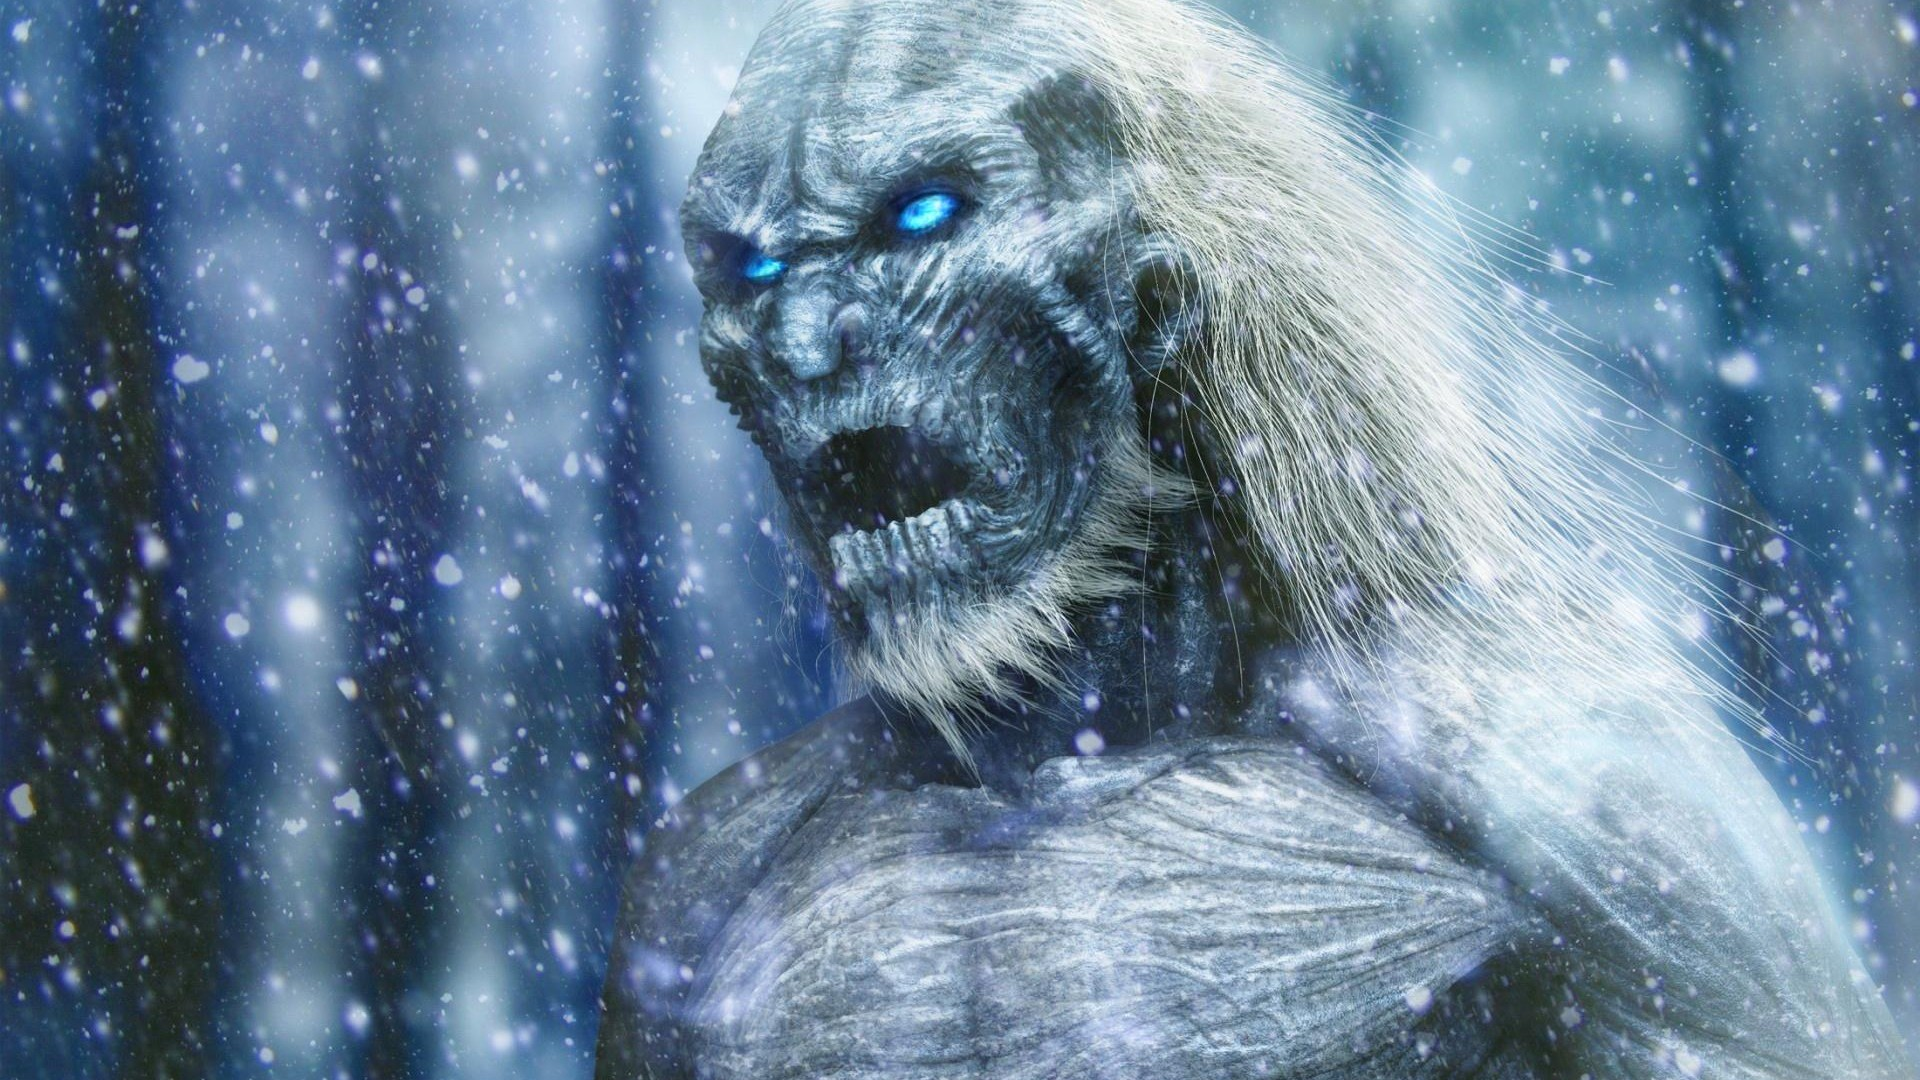 Download game of thrones white walkers wallpaper HD wallpaper 1920x1080